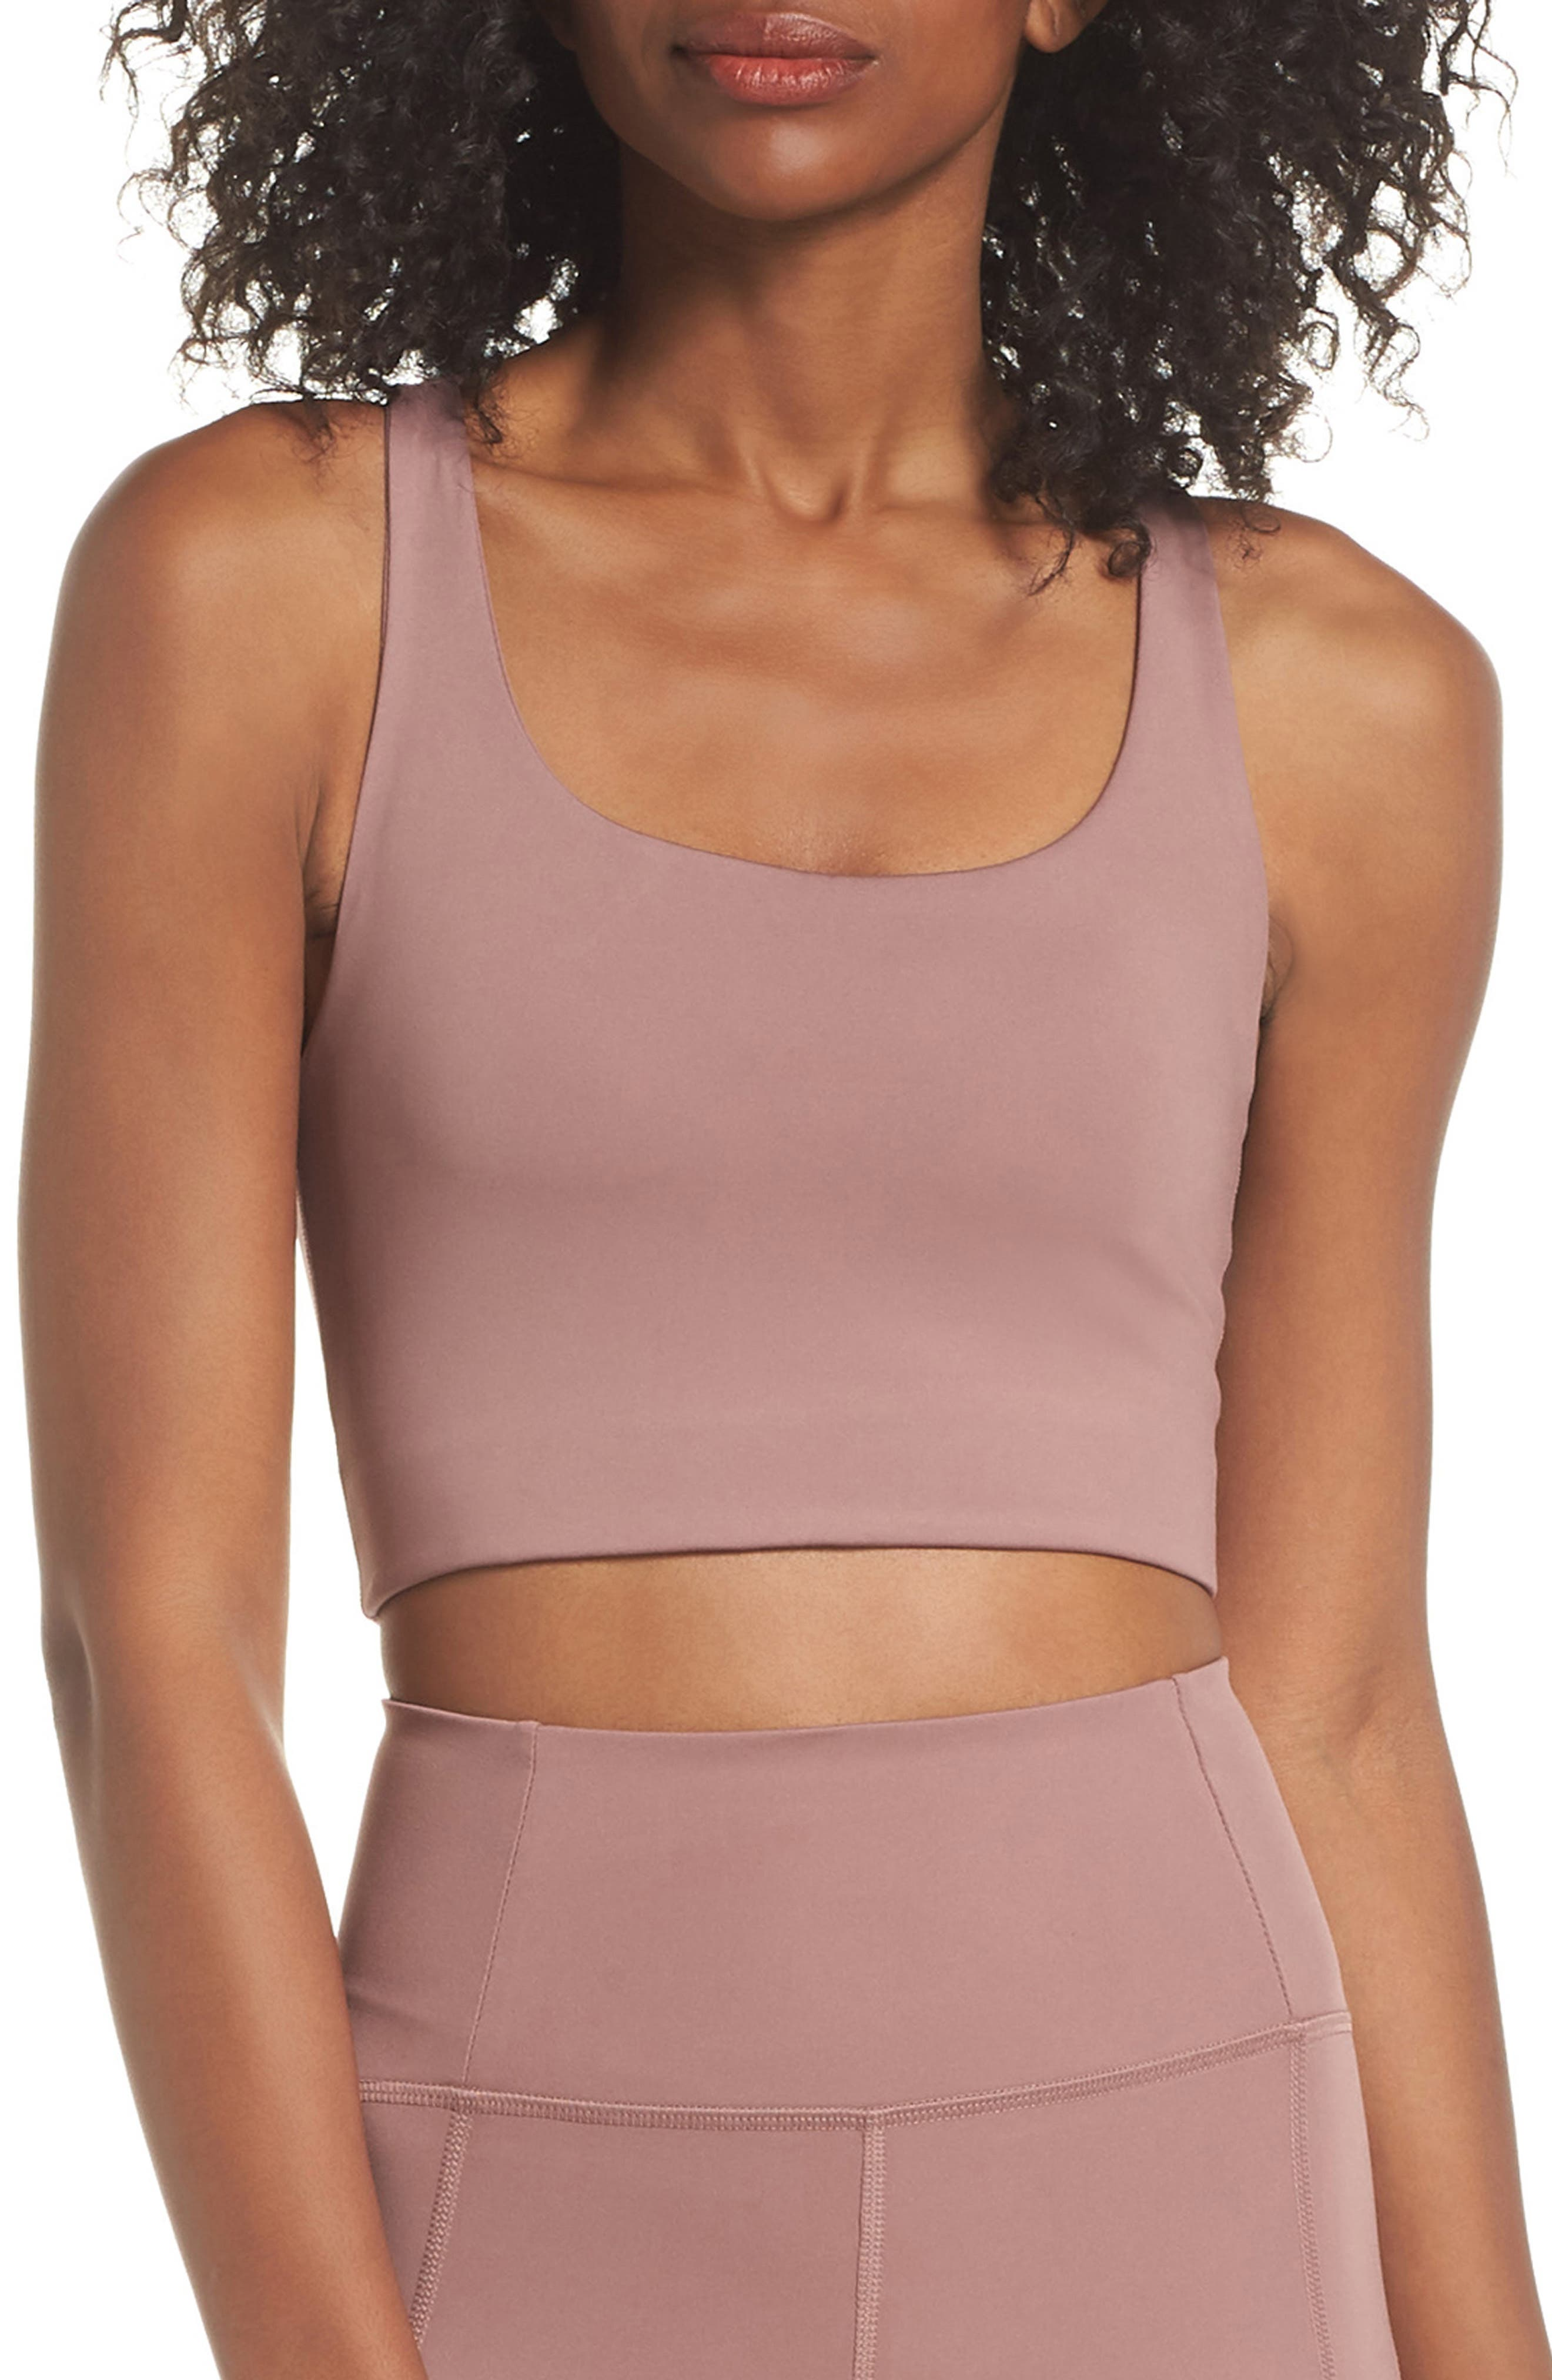 Girlfriend Collective Paloma Sports Bra, Pink